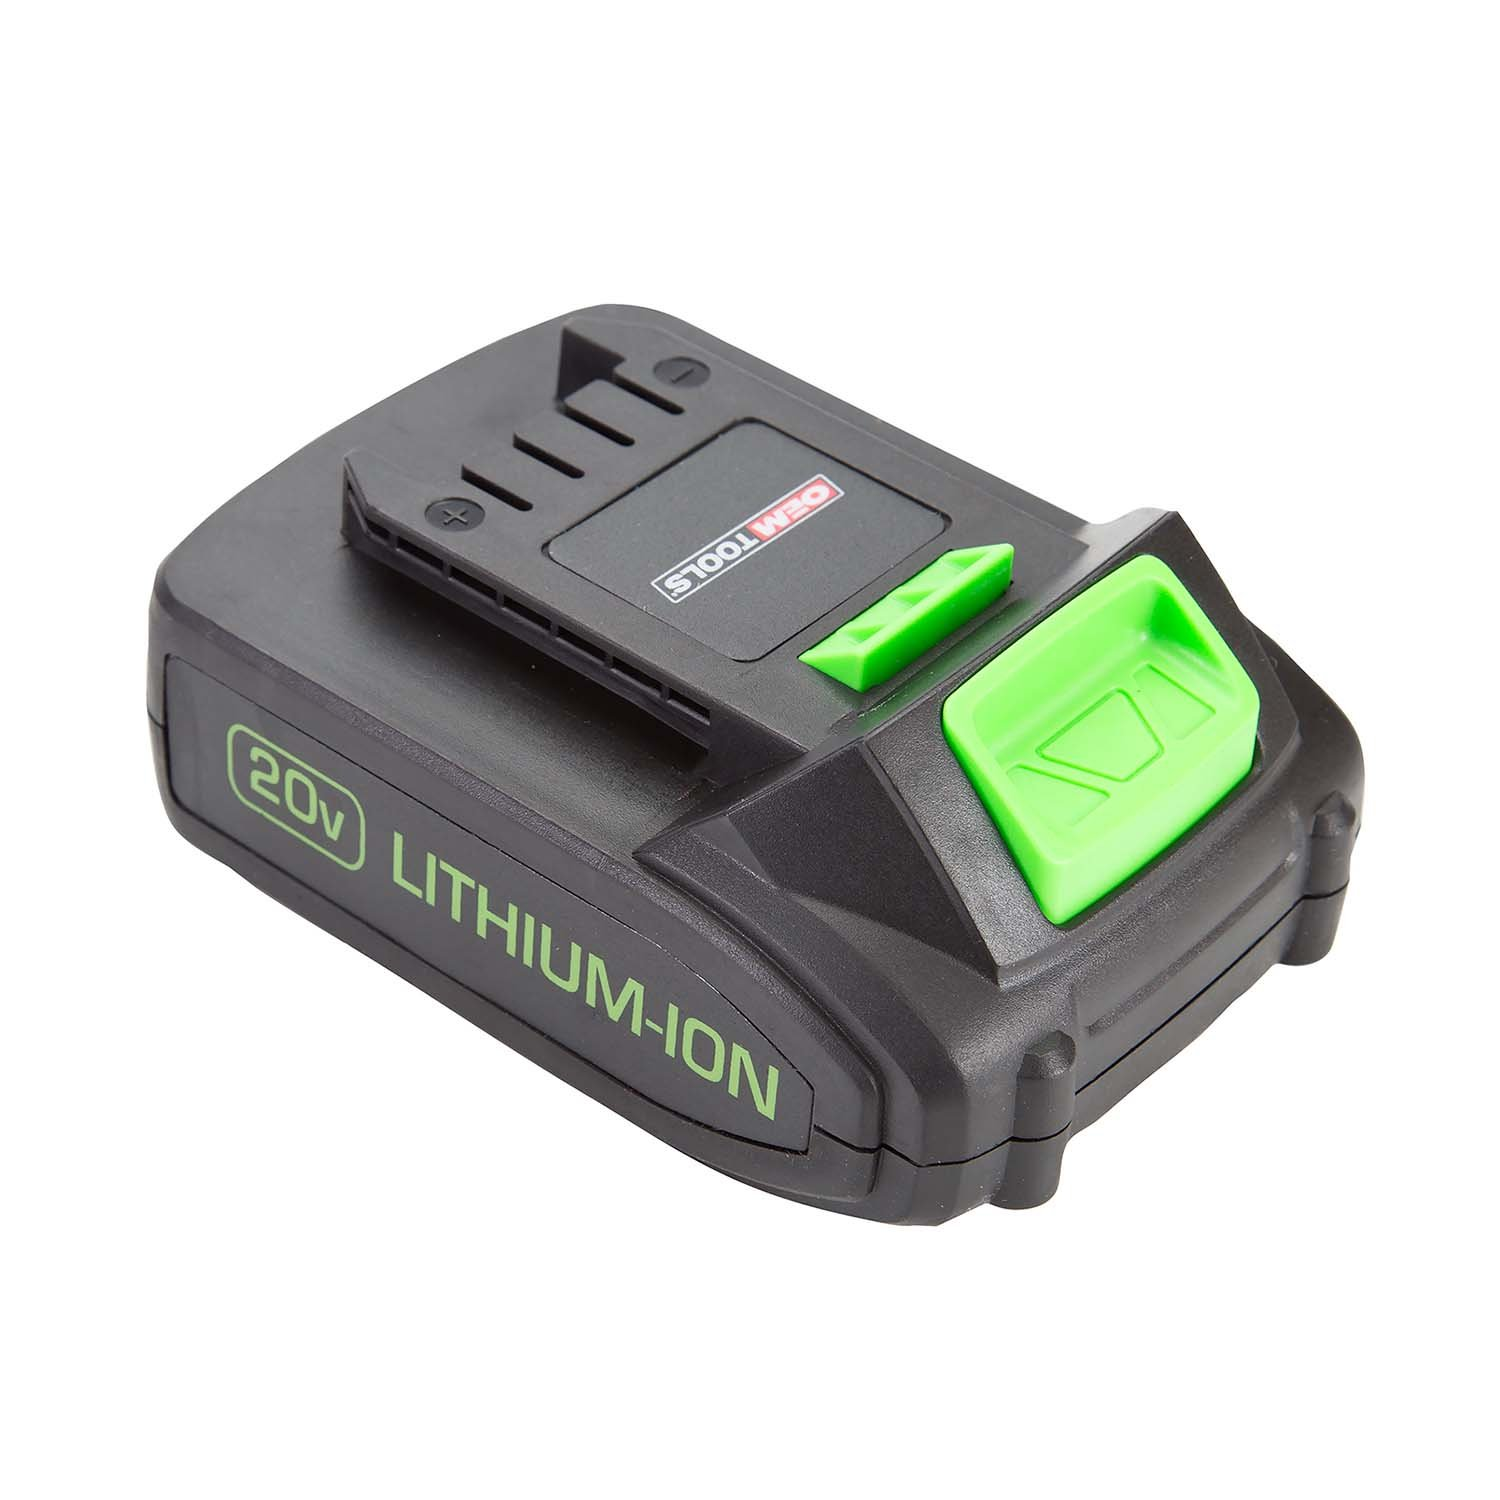 717PjYTmAnL._SL1500_ OEMTools Impact Wrench Review